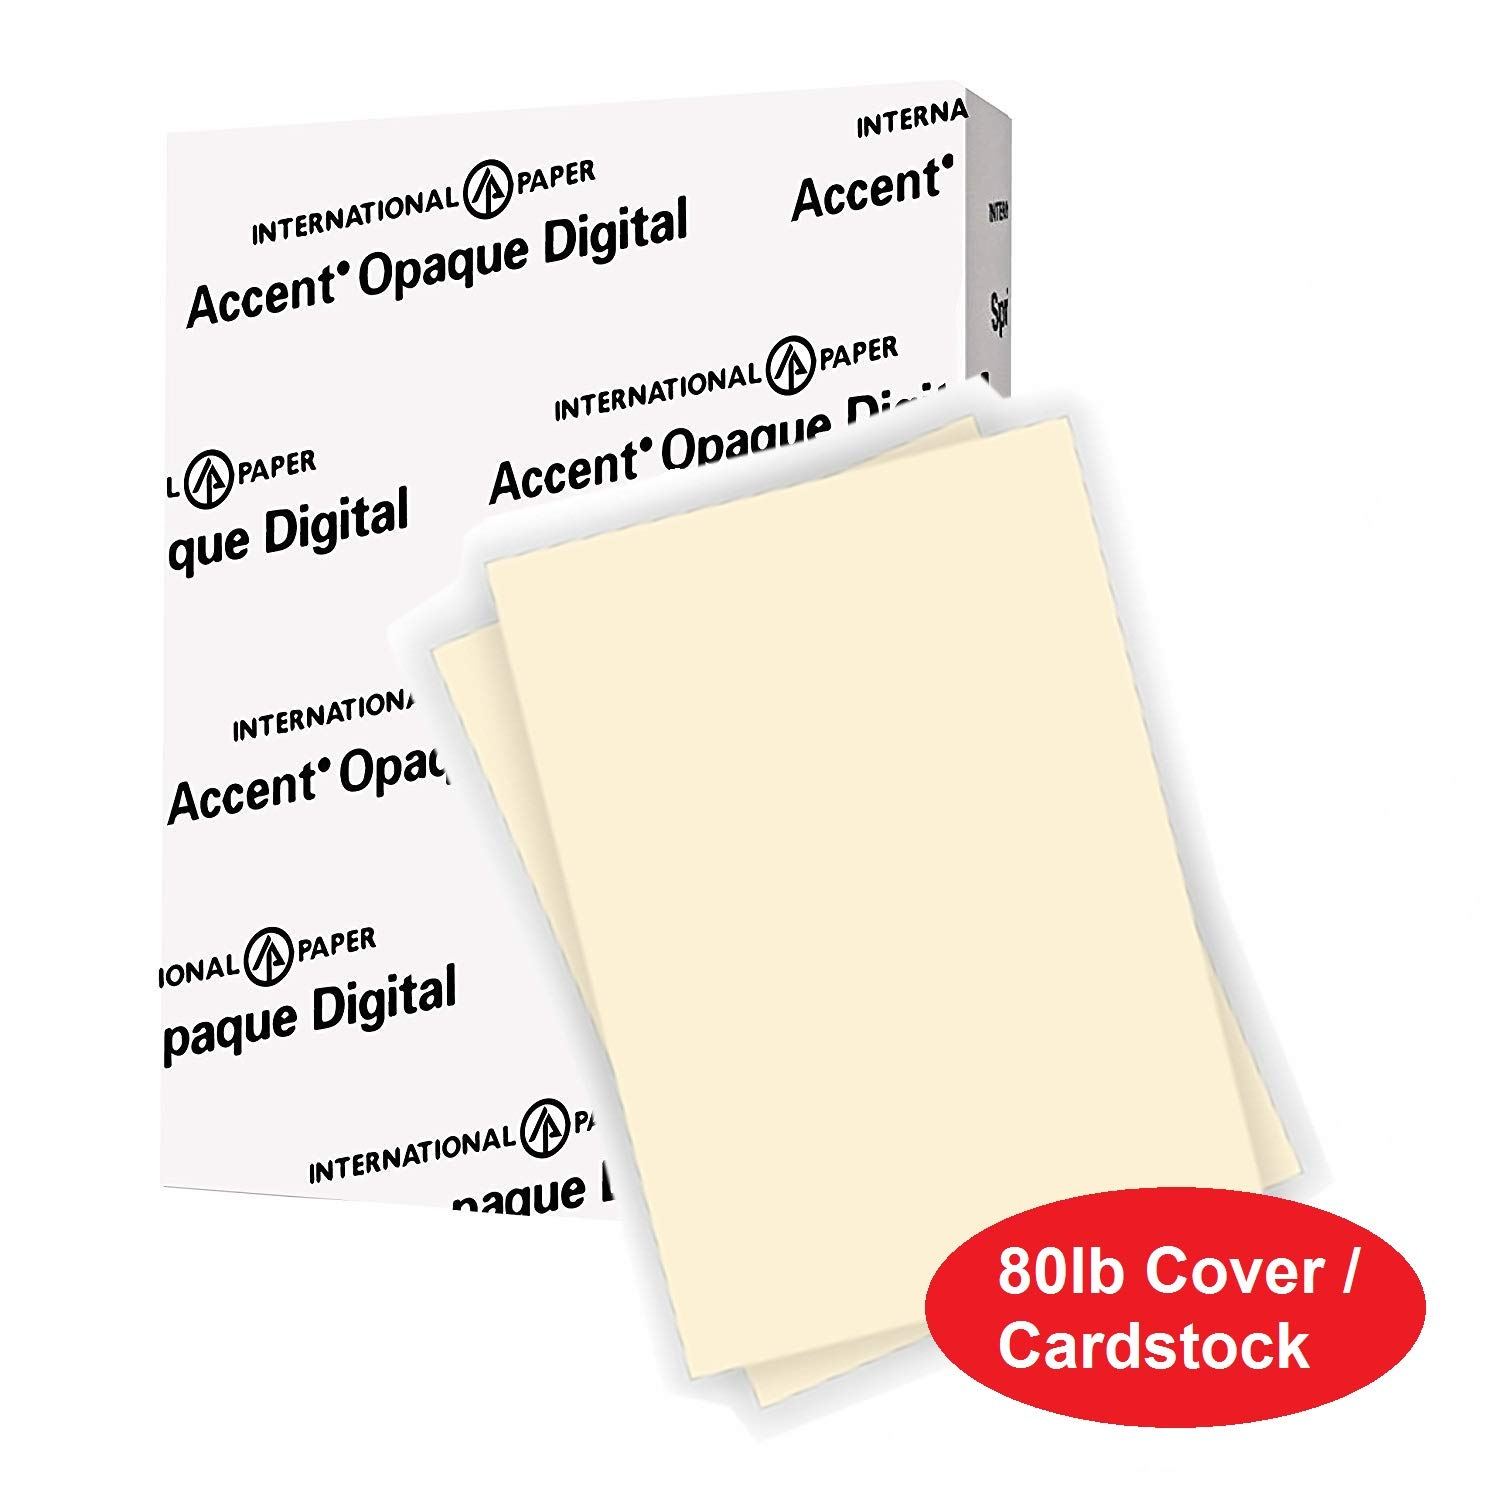 Accent Opaque Thick Cardstock Paper, Warm White Paper, 80lb Cover, 216 gsm, Letter Size, 8.5 x 11 Paper, 97 Bright, 1 Ream / 250 Sheets, Super Smooth, Heavy Card Stock (121978R) by Accent